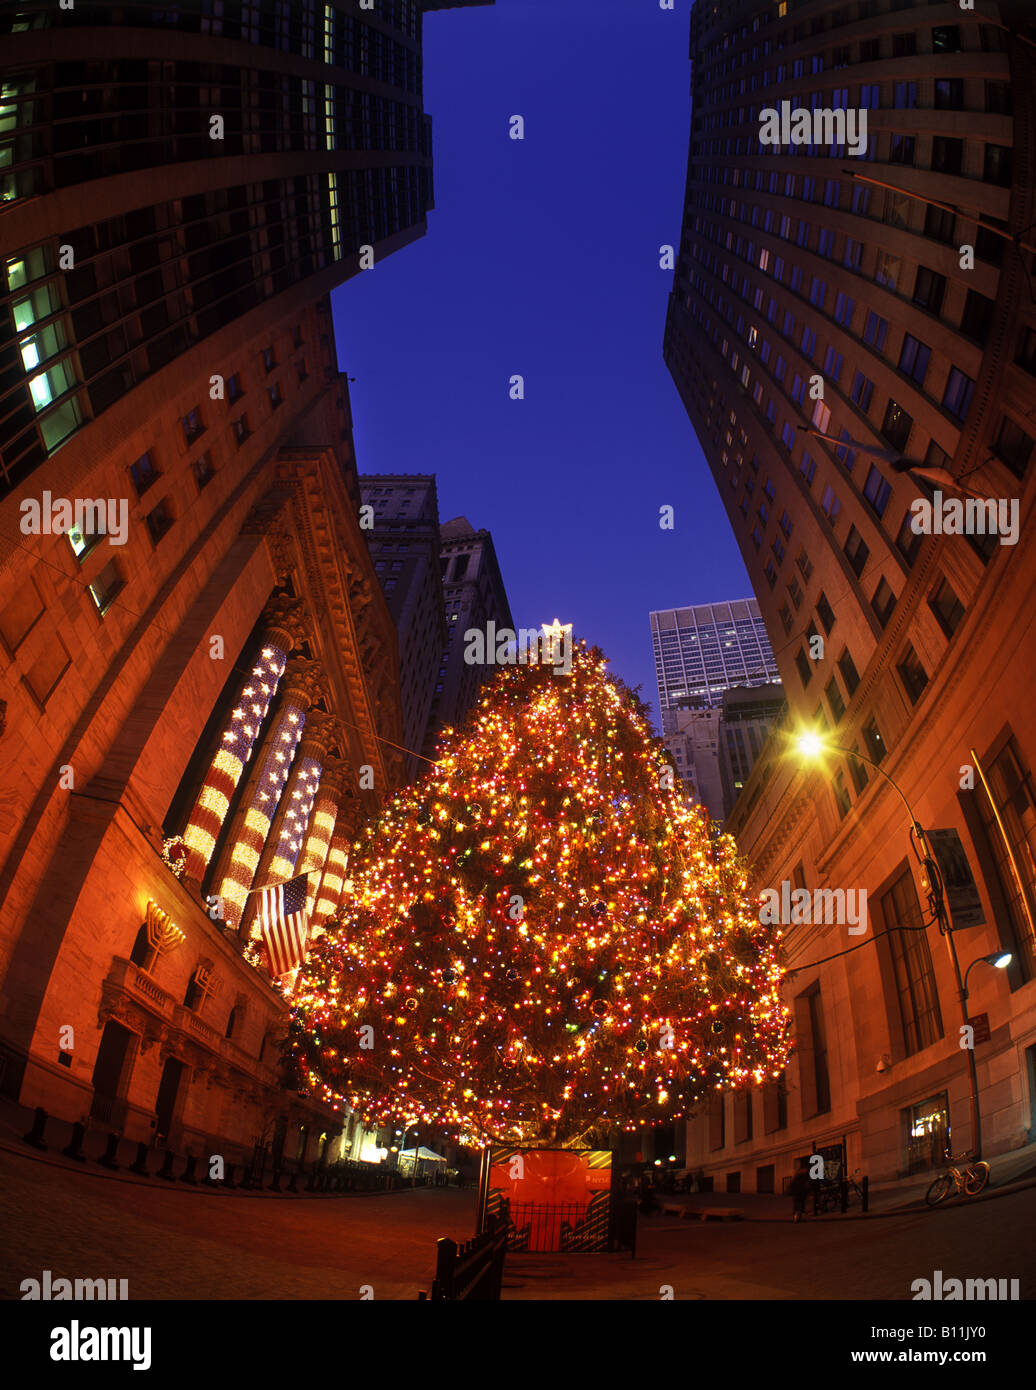 christmas tree lights broad street financial district manhattan new